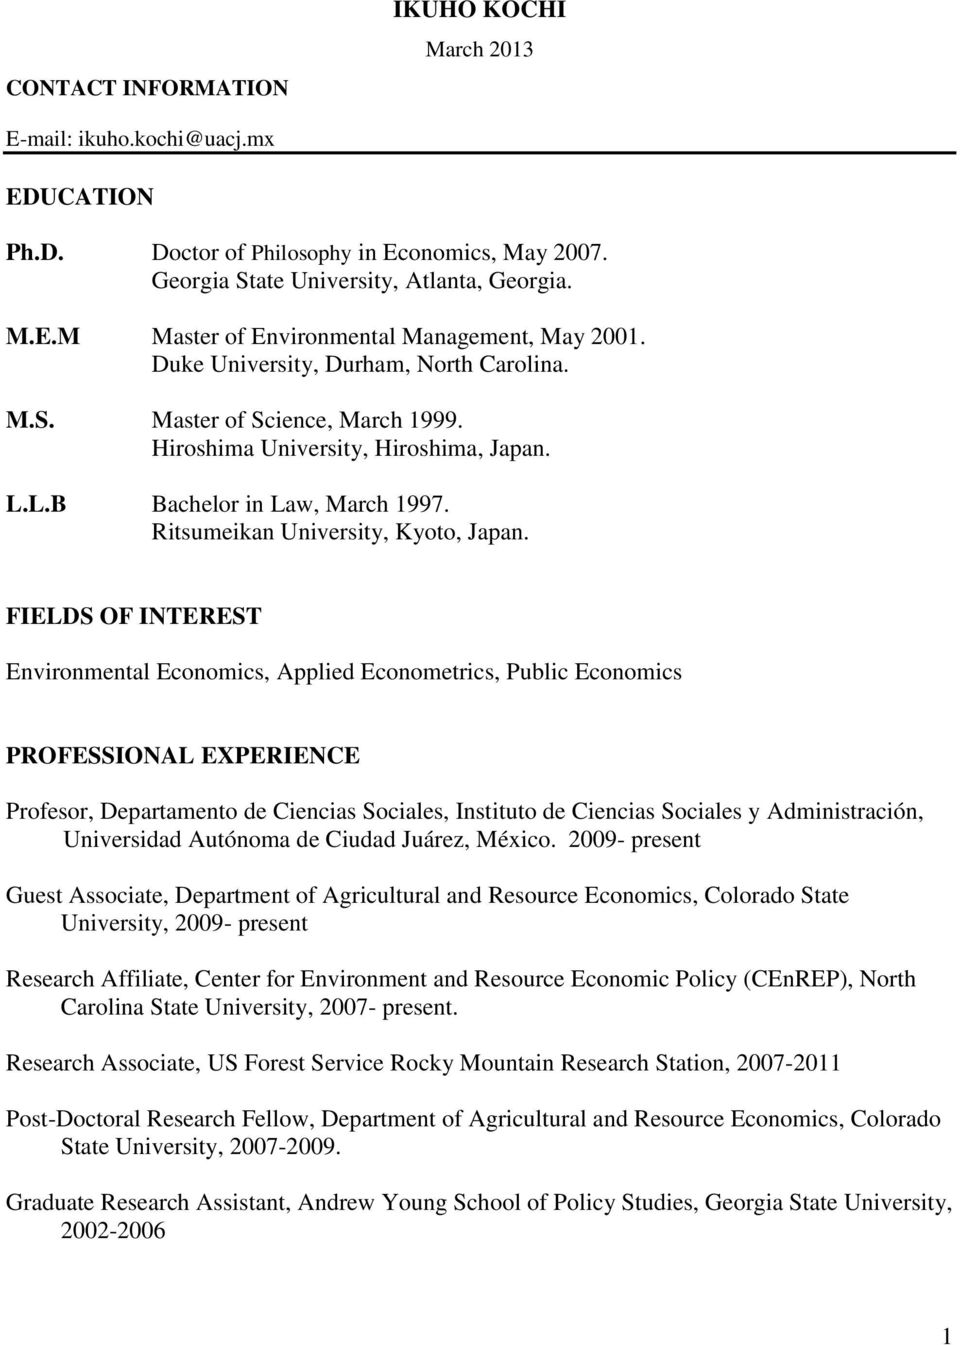 FIELDS OF INTEREST Environmental Economics, Applied Econometrics, Public Economics PROFESSIONAL EXPERIENCE Profesor, Departamento de Ciencias Sociales, Instituto de Ciencias Sociales y